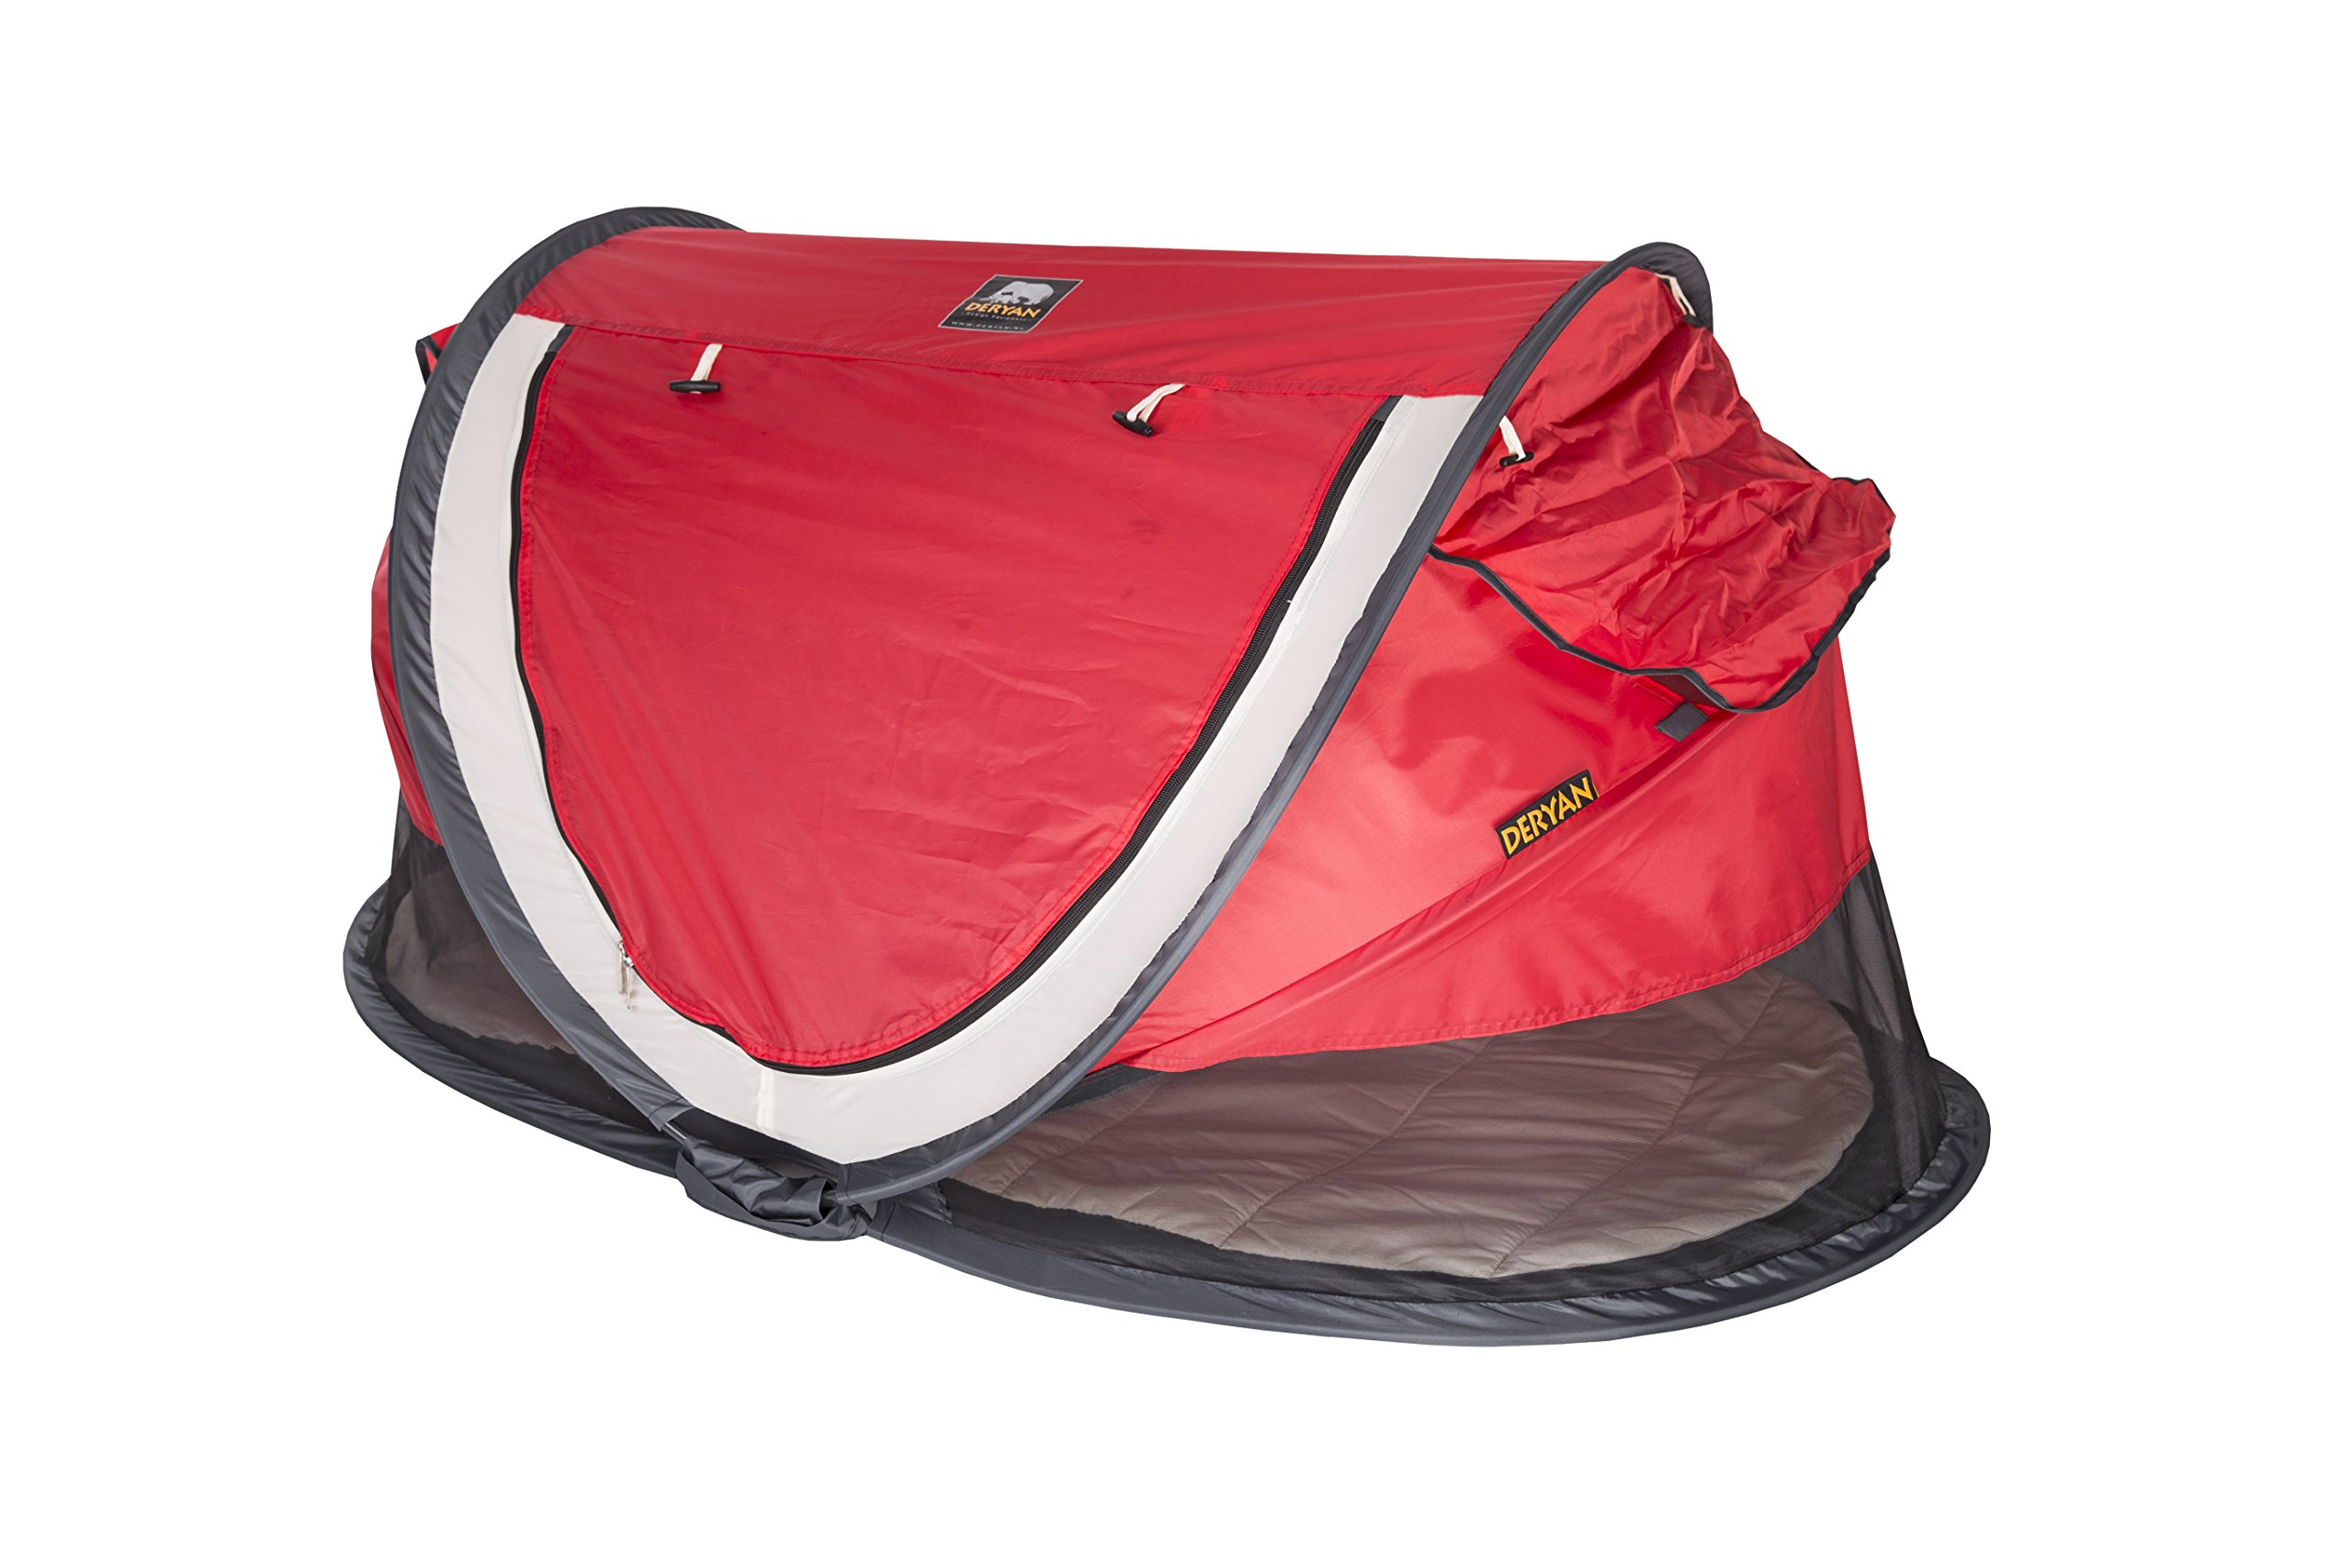 Travel Cot Peuter Luxe (Red) Deryan Perfect for the beach, the park or the back garden for playing in or for naps Can Pops up immediately, no poles or fiddly frames to put together. Lightweight and compact in its zip up bag 2